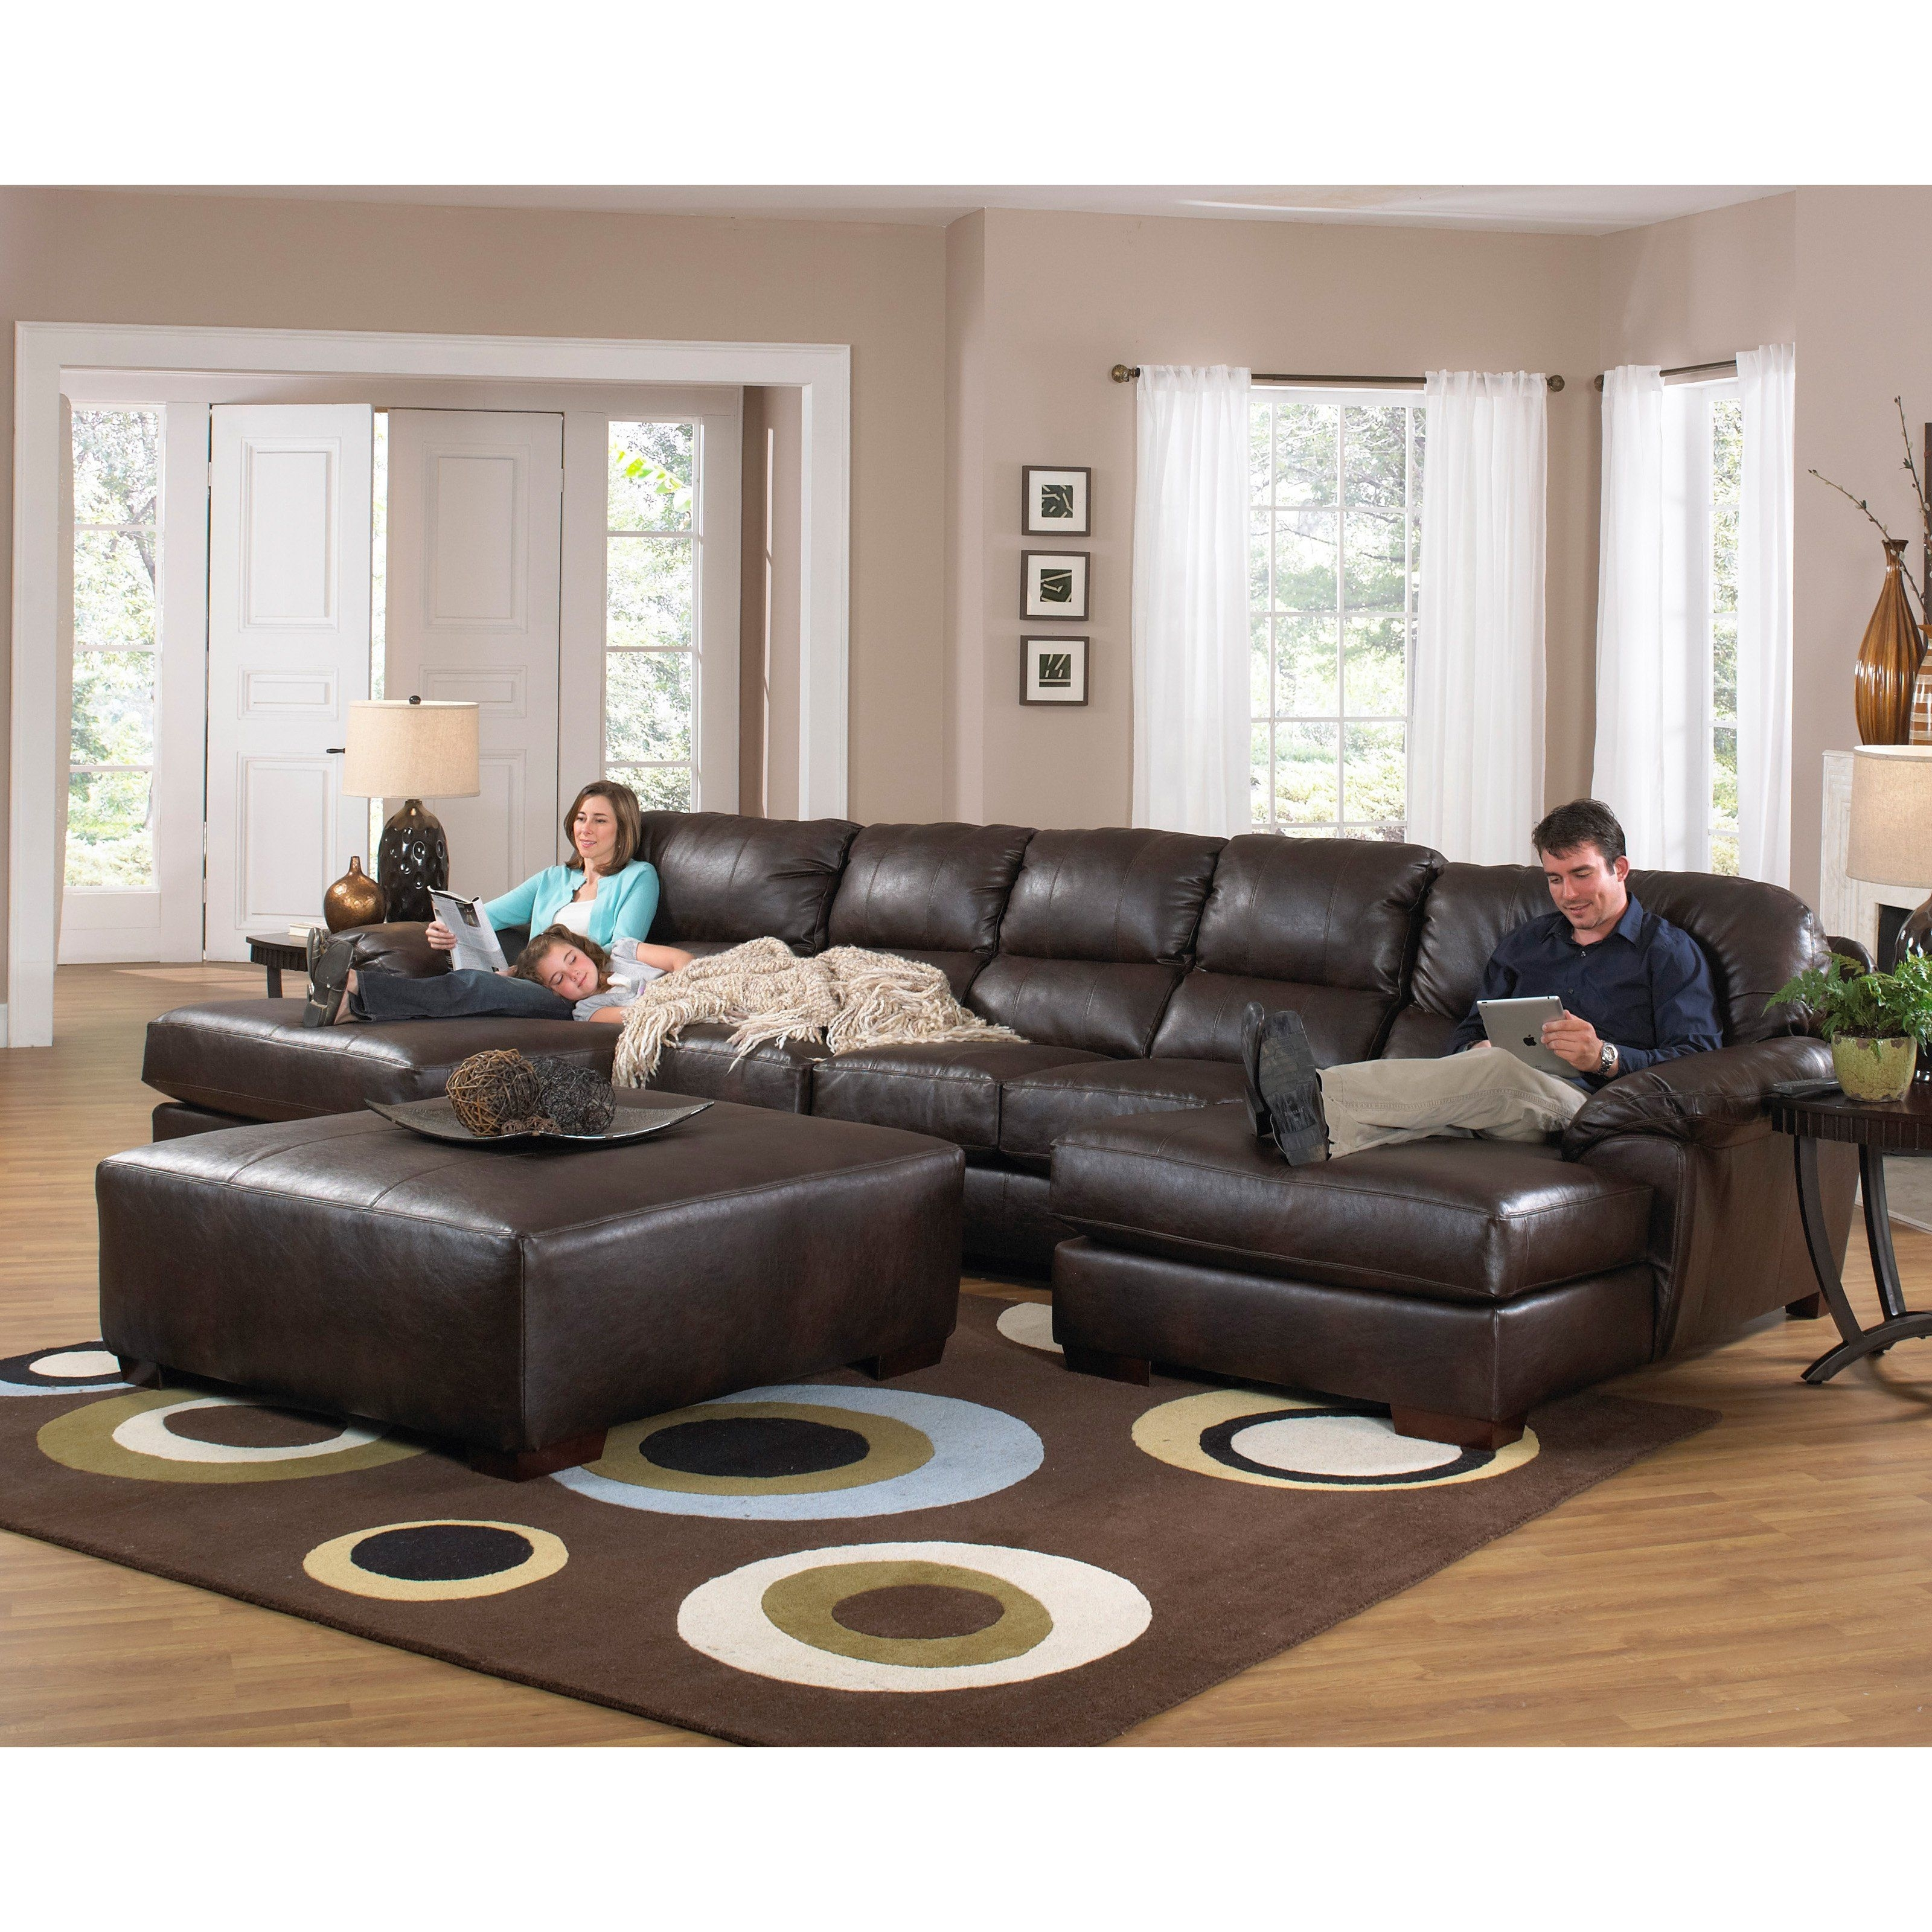 Jackson Furniture Lawson Sectional - Jac494 | Products | Pinterest inside Jackson 6 Piece Power Reclining Sectionals (Image 18 of 30)